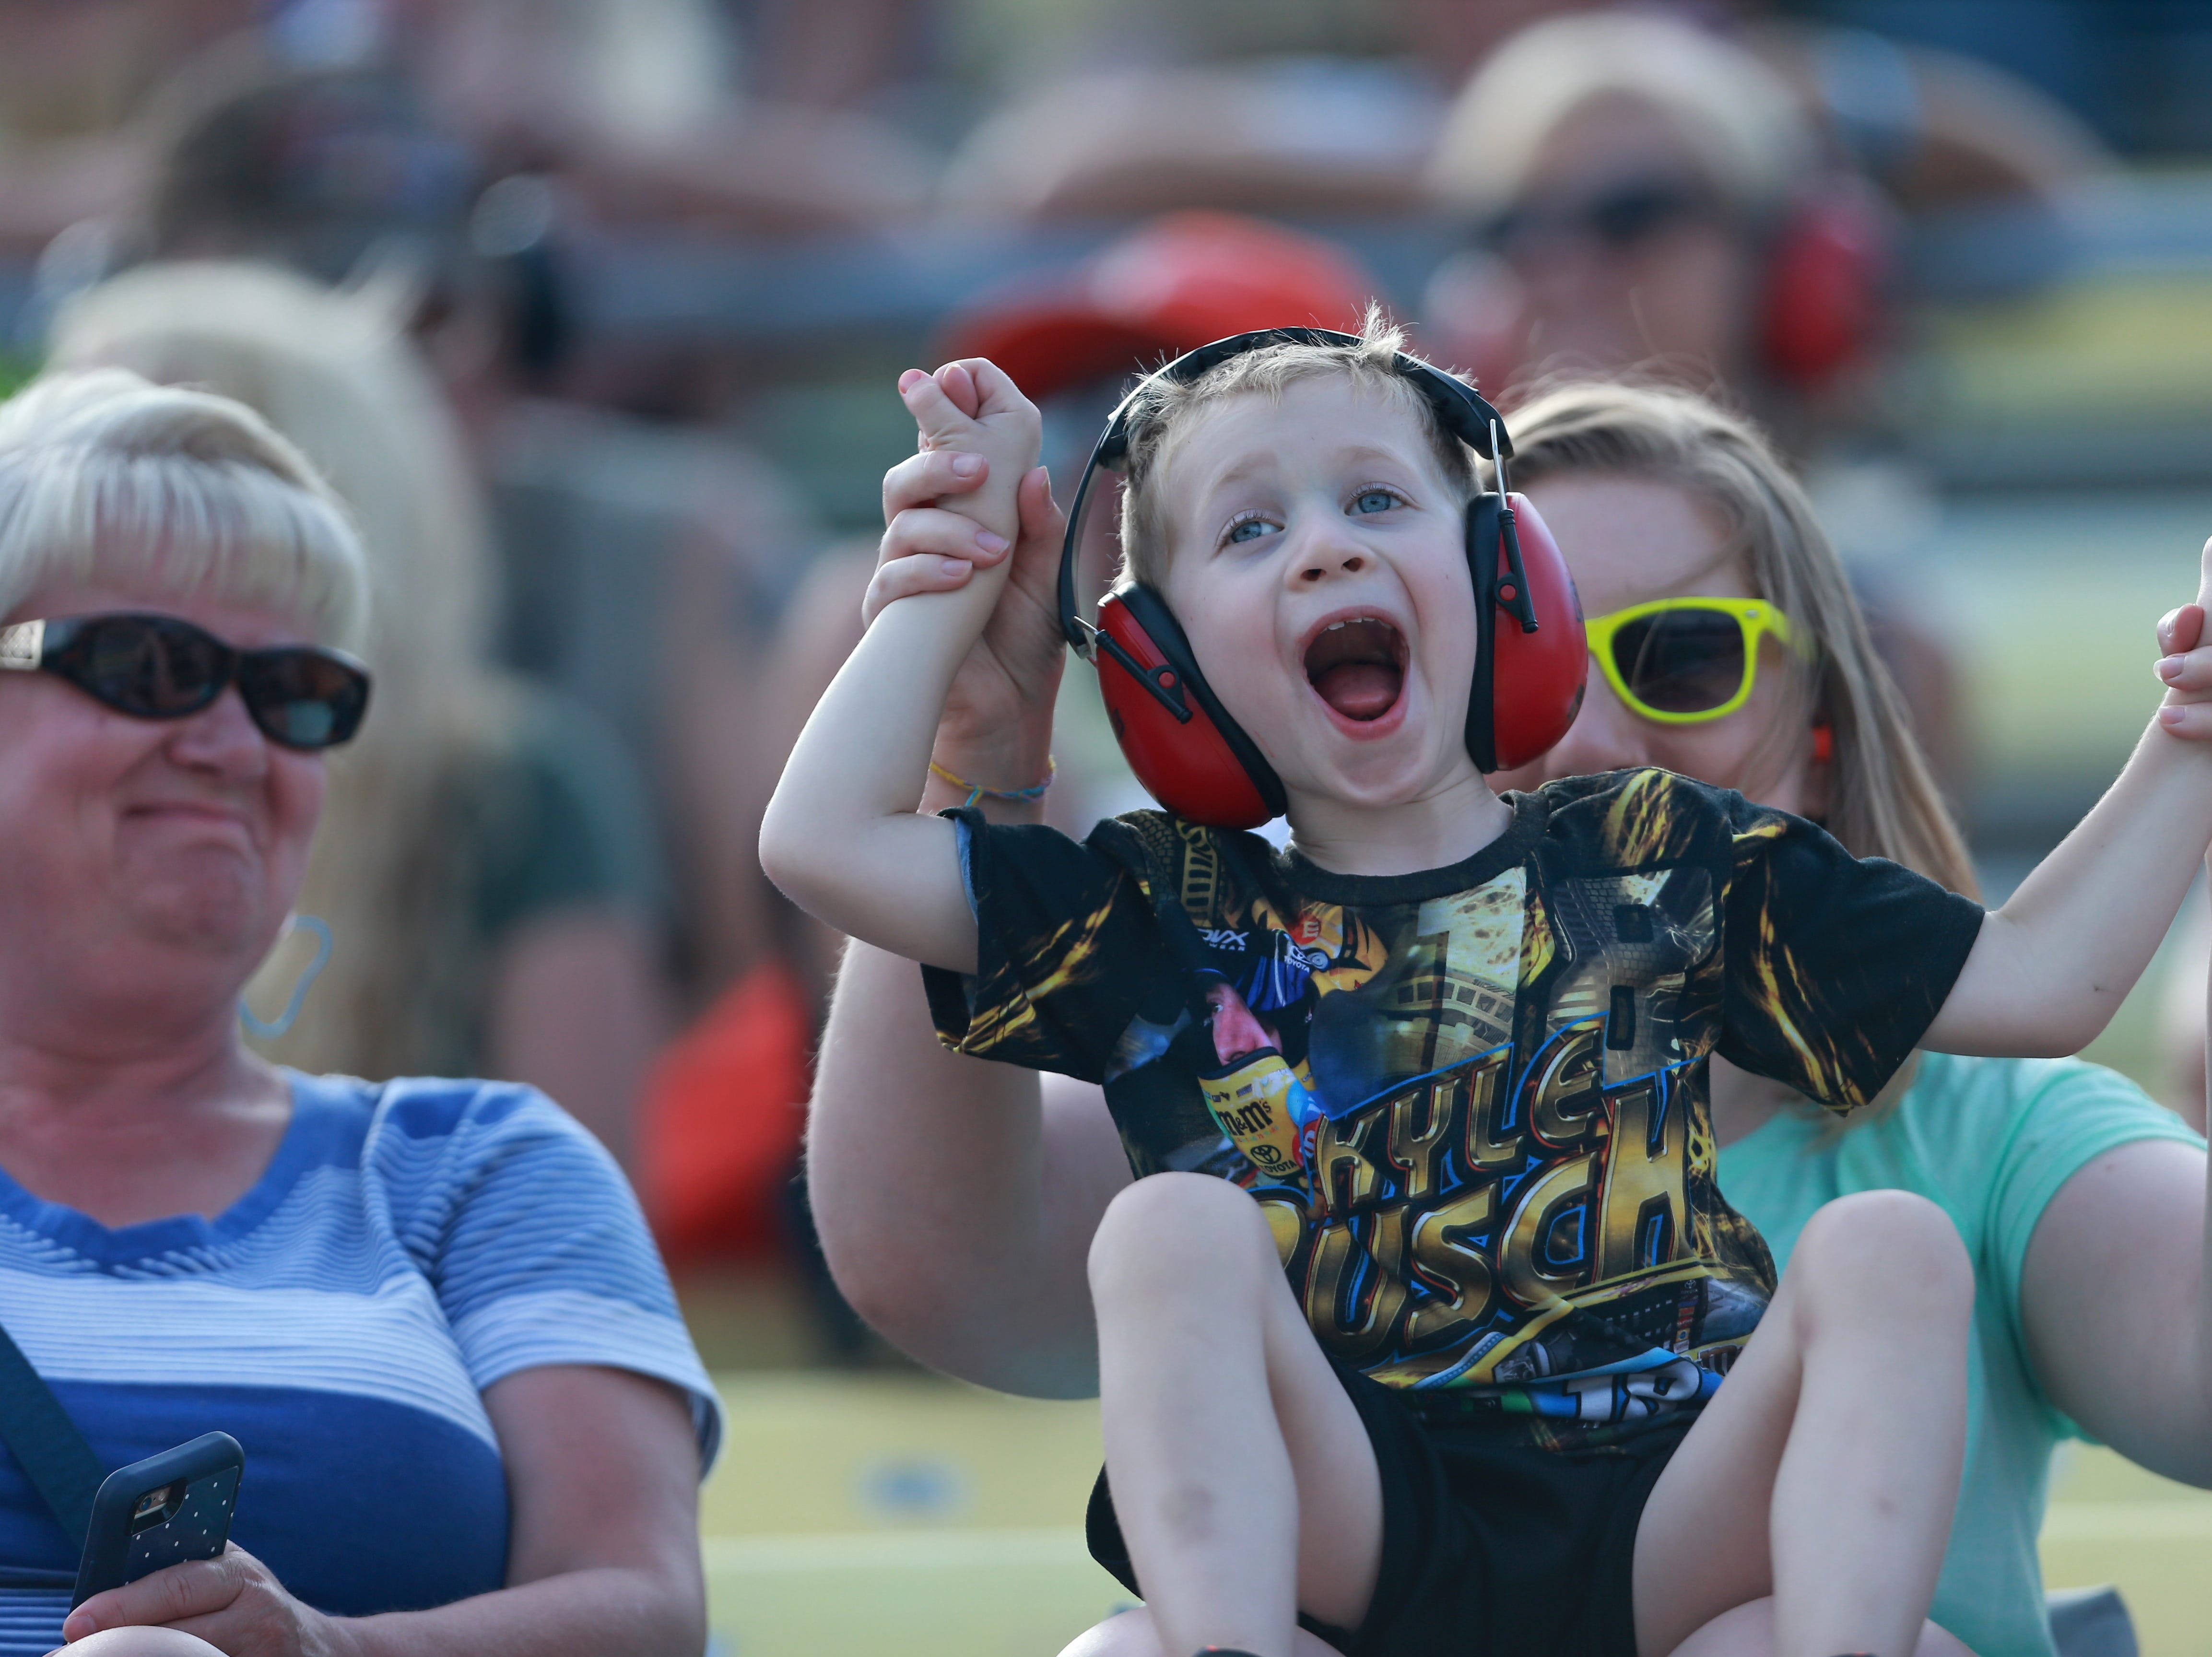 A young fan cheers during the Monster Energy NASCAR Cup Series Consmers Energy 400 at Michigan International Speedway.